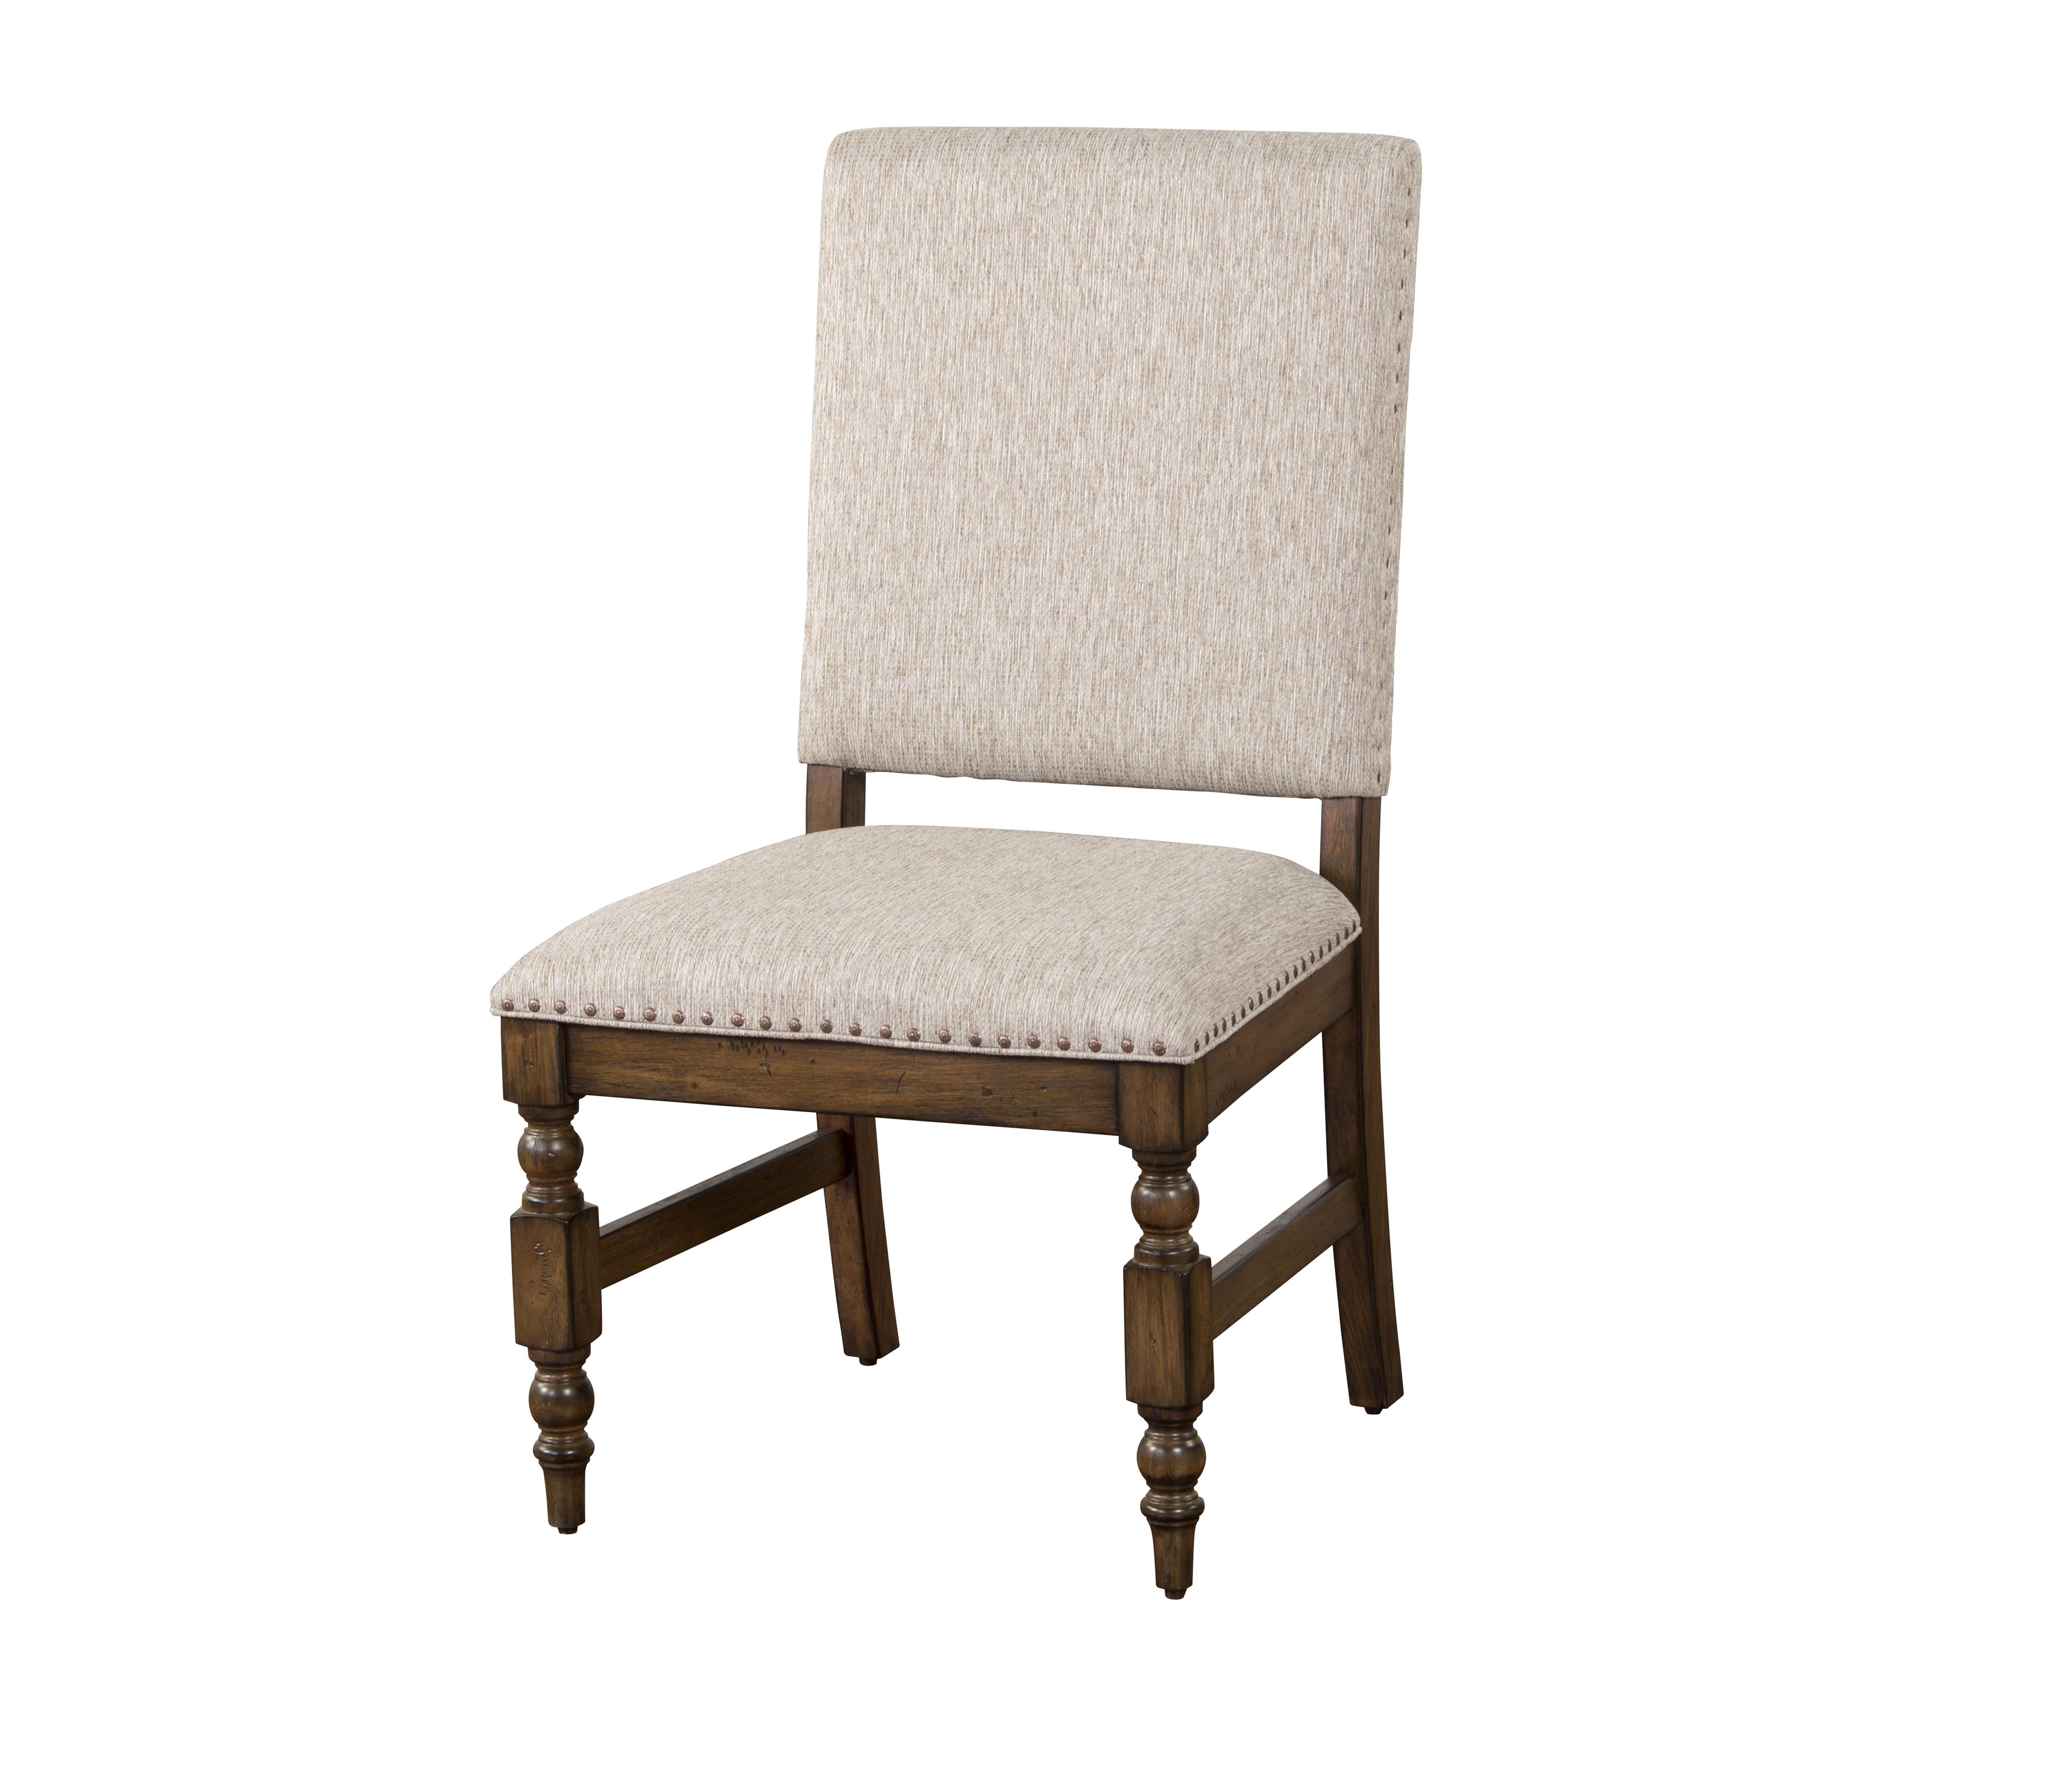 Morris Home Furnishings Shiloh Shiloh Side Chair - Item Number: 342842449